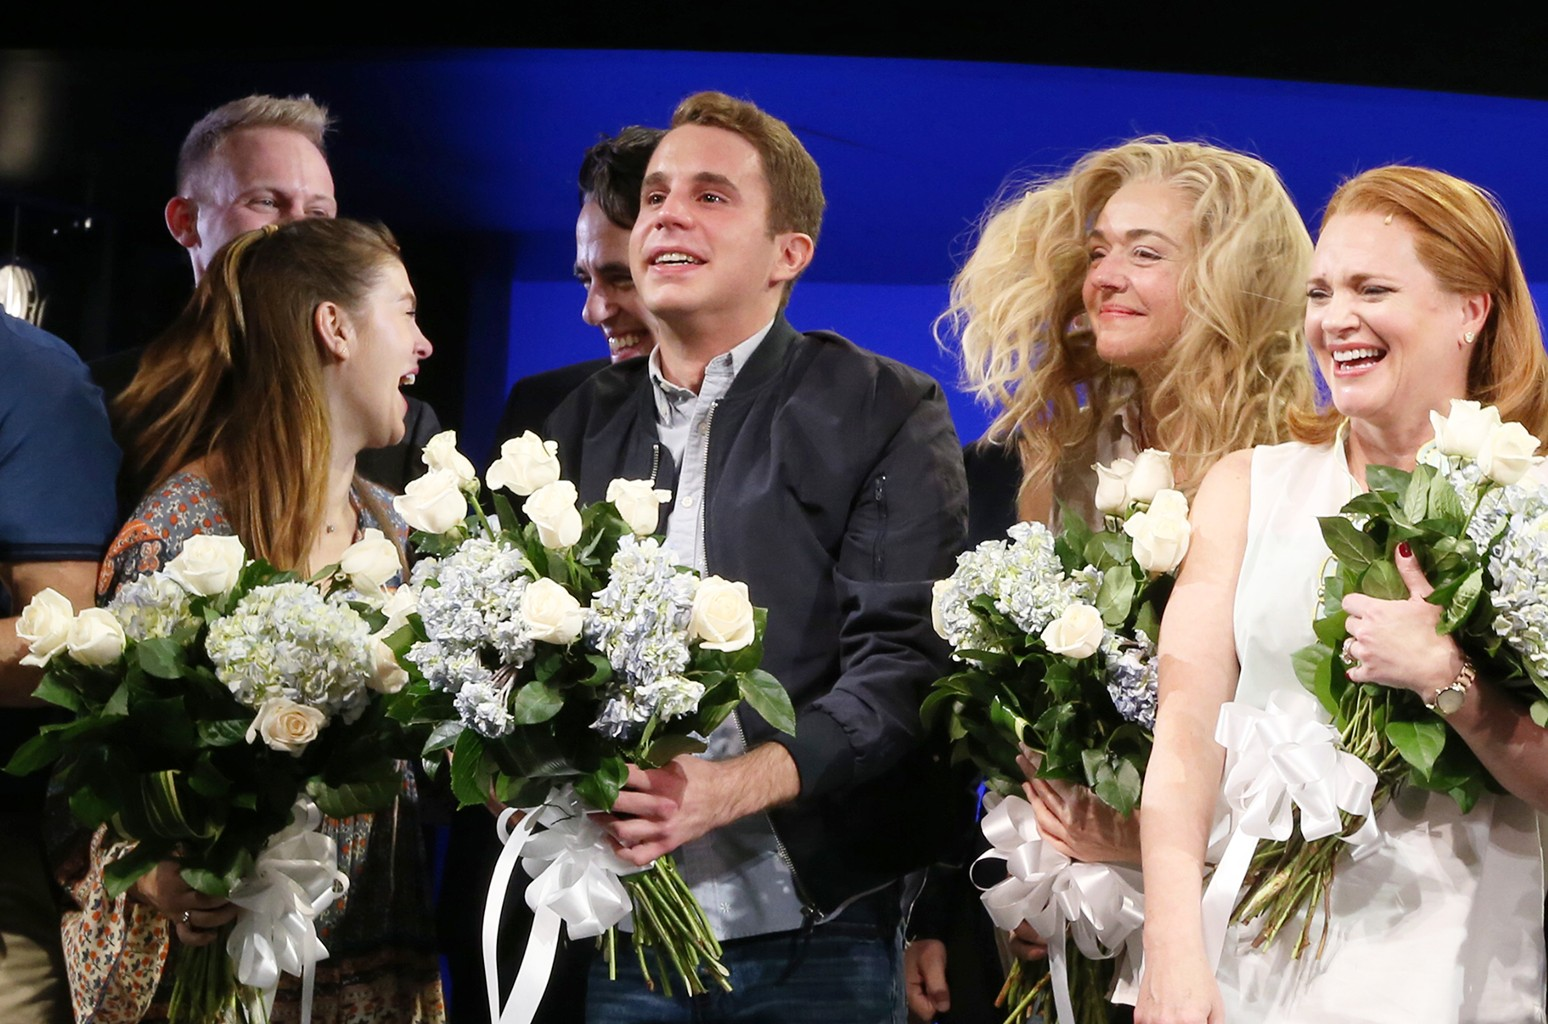 """Ben Platt and cast members attend curtain call during """"Dear Evan Hansen"""" Broadway opening night at Music Box Theatre on Dec. 4, 2016 in New York City."""